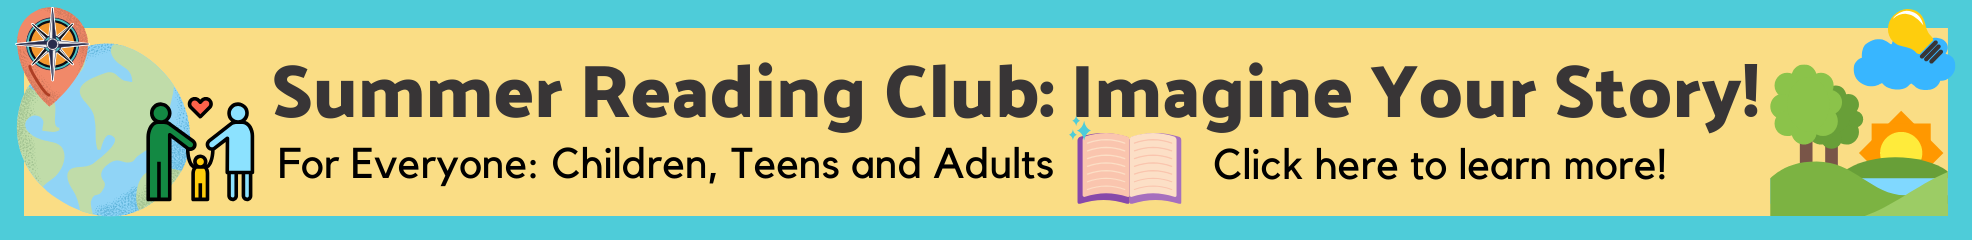 Summer Reading Club: Imagine Your Story for everyone: adults, children, teens click here to learn more